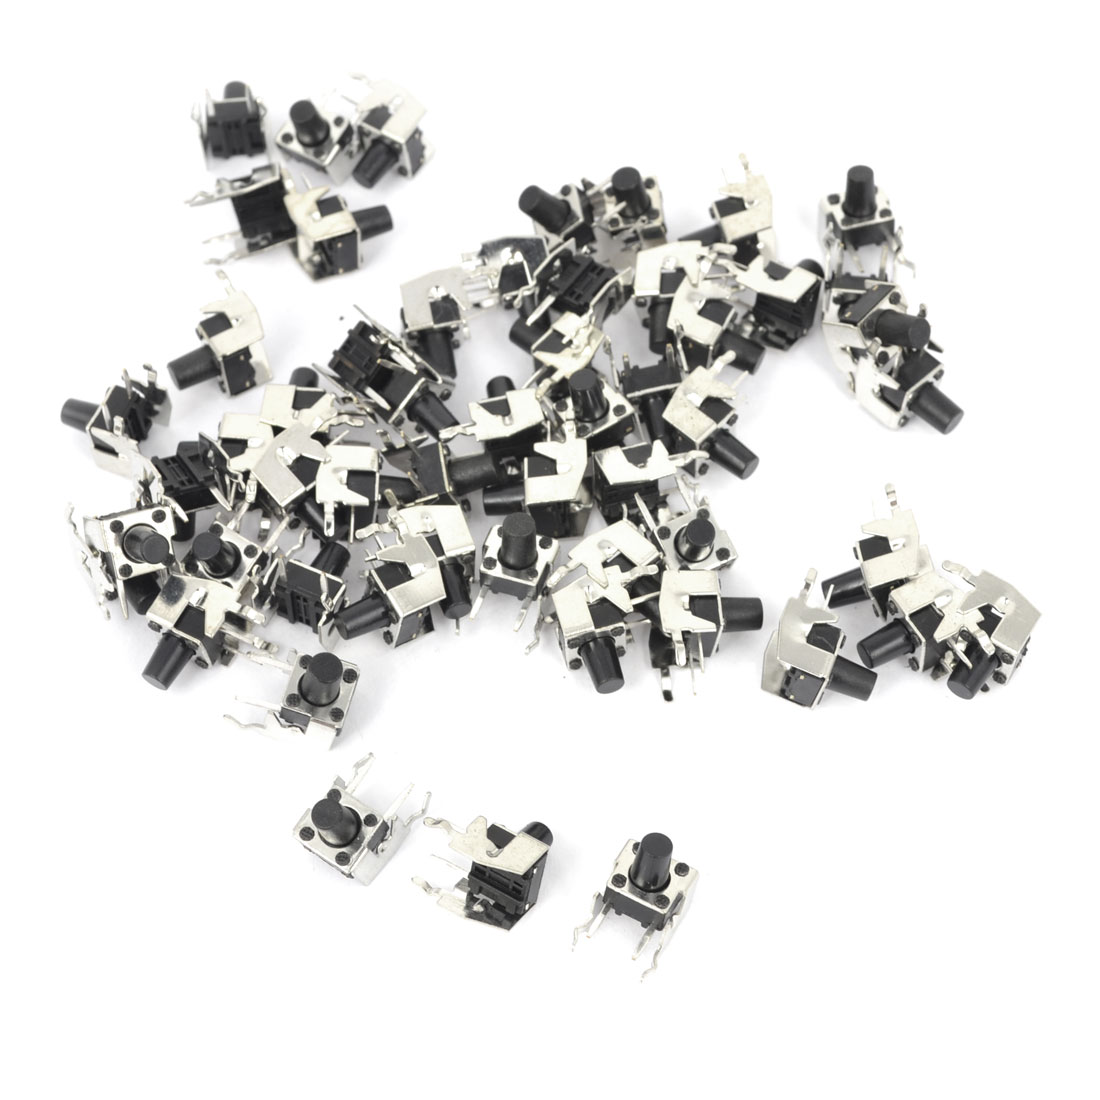 55Pcs Momentary PCB Side Mounting Fixed Bracket Pushbutton Push Button Tact Tactile Switch DIP 2 Terminals 6mmx6mmx8mm